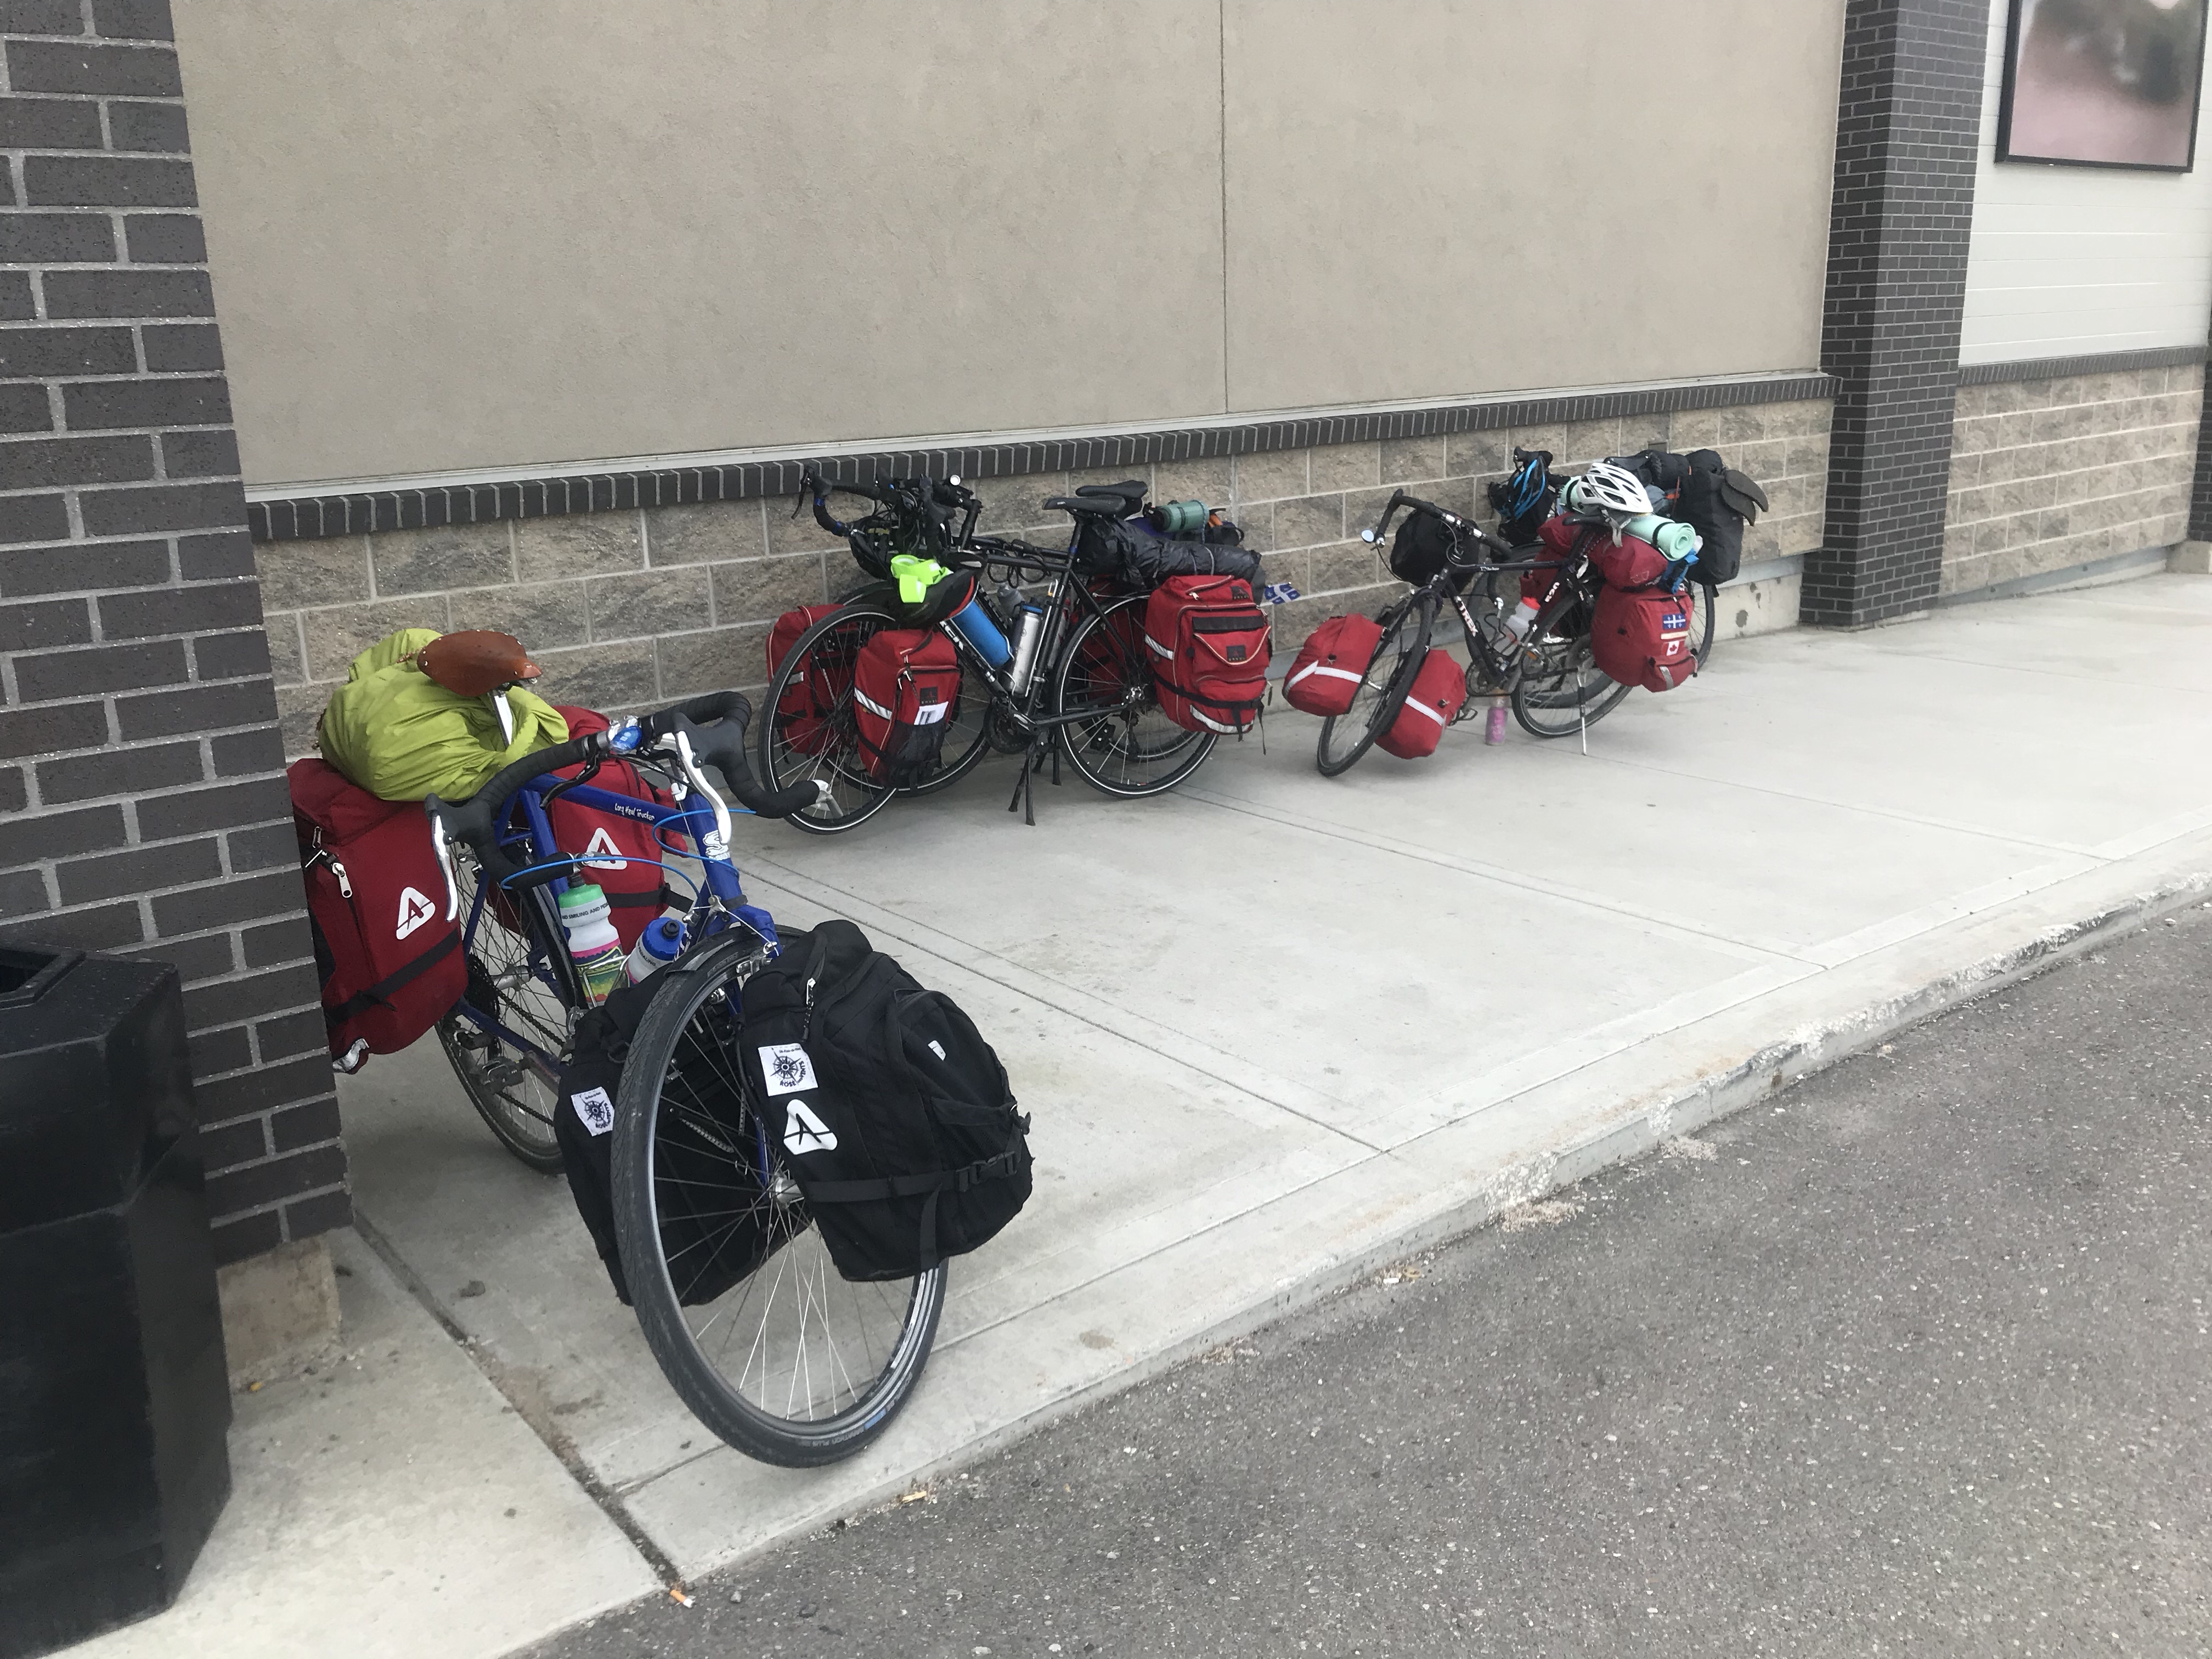 Five bikes loaded with gear leaning against a wall